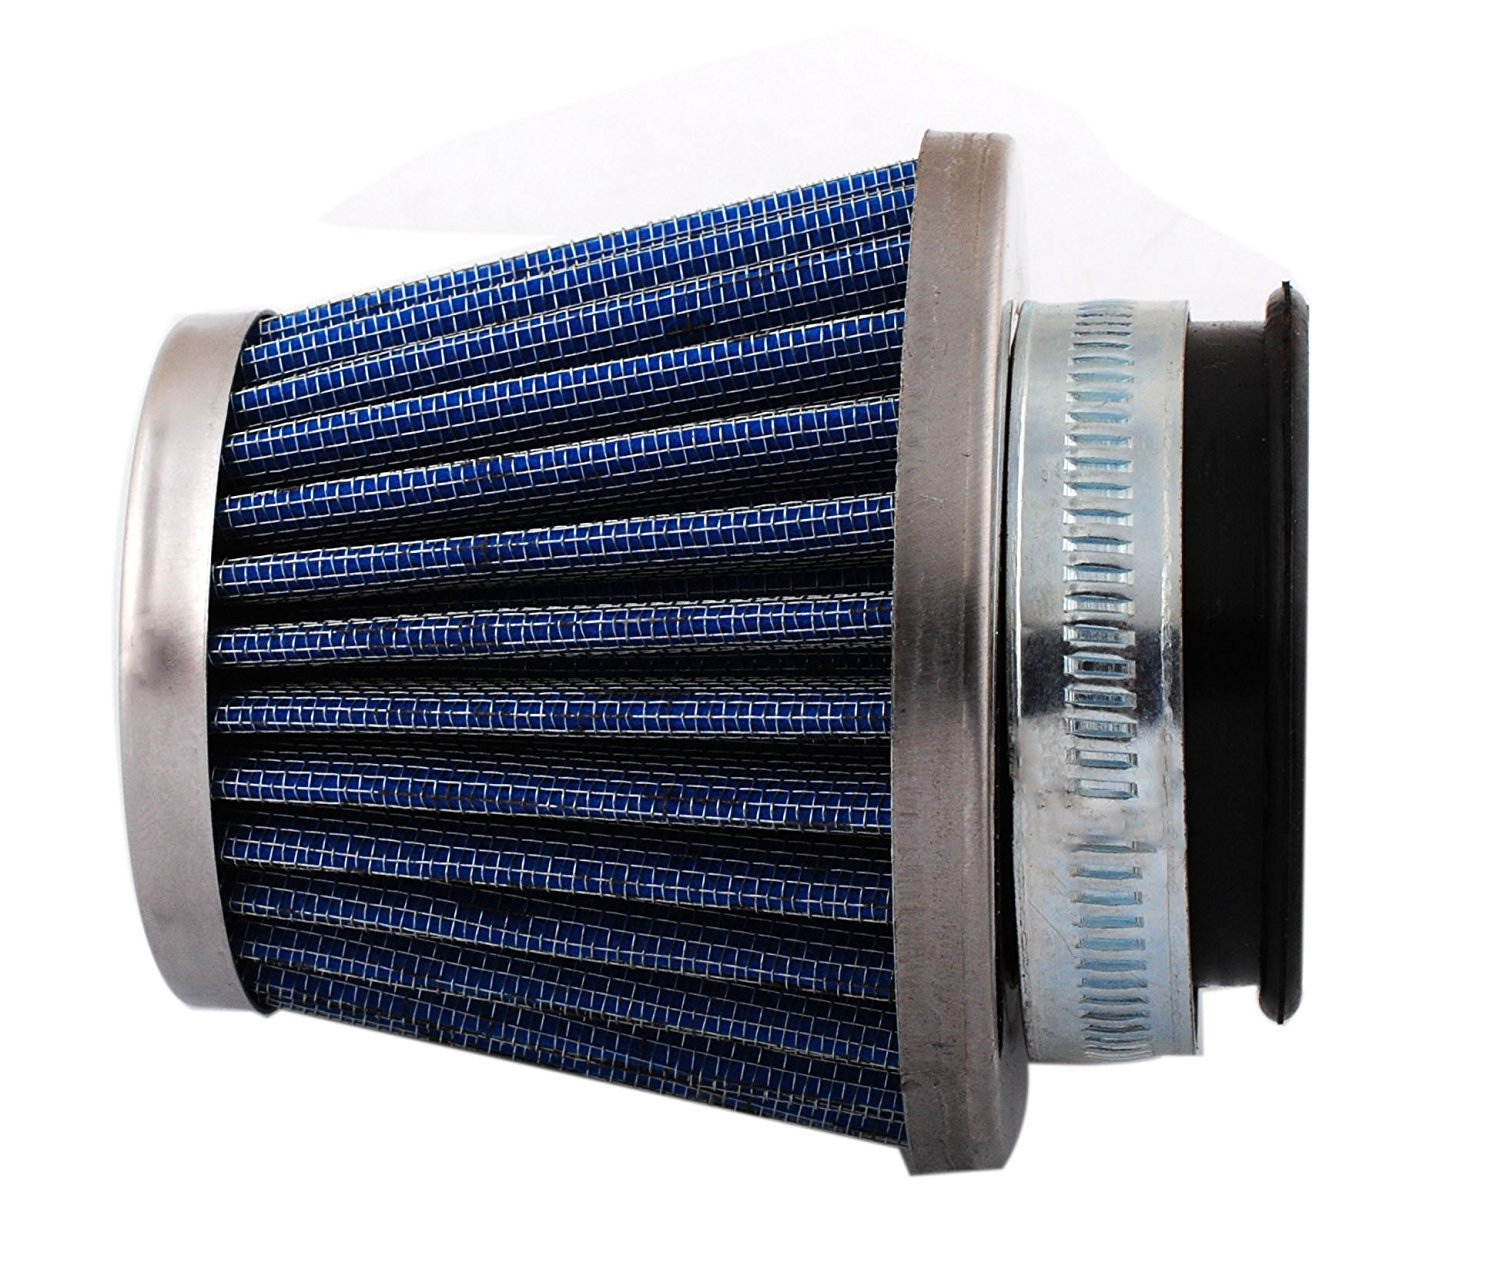 Podoy Gy6 39mm Air Filter for Scooter with 12V 35W Light Bulb 50cc 110cc 125cc 150cc 200cc Gy6 Scooter Atv Dirt Bike Motorcycle 4350326796